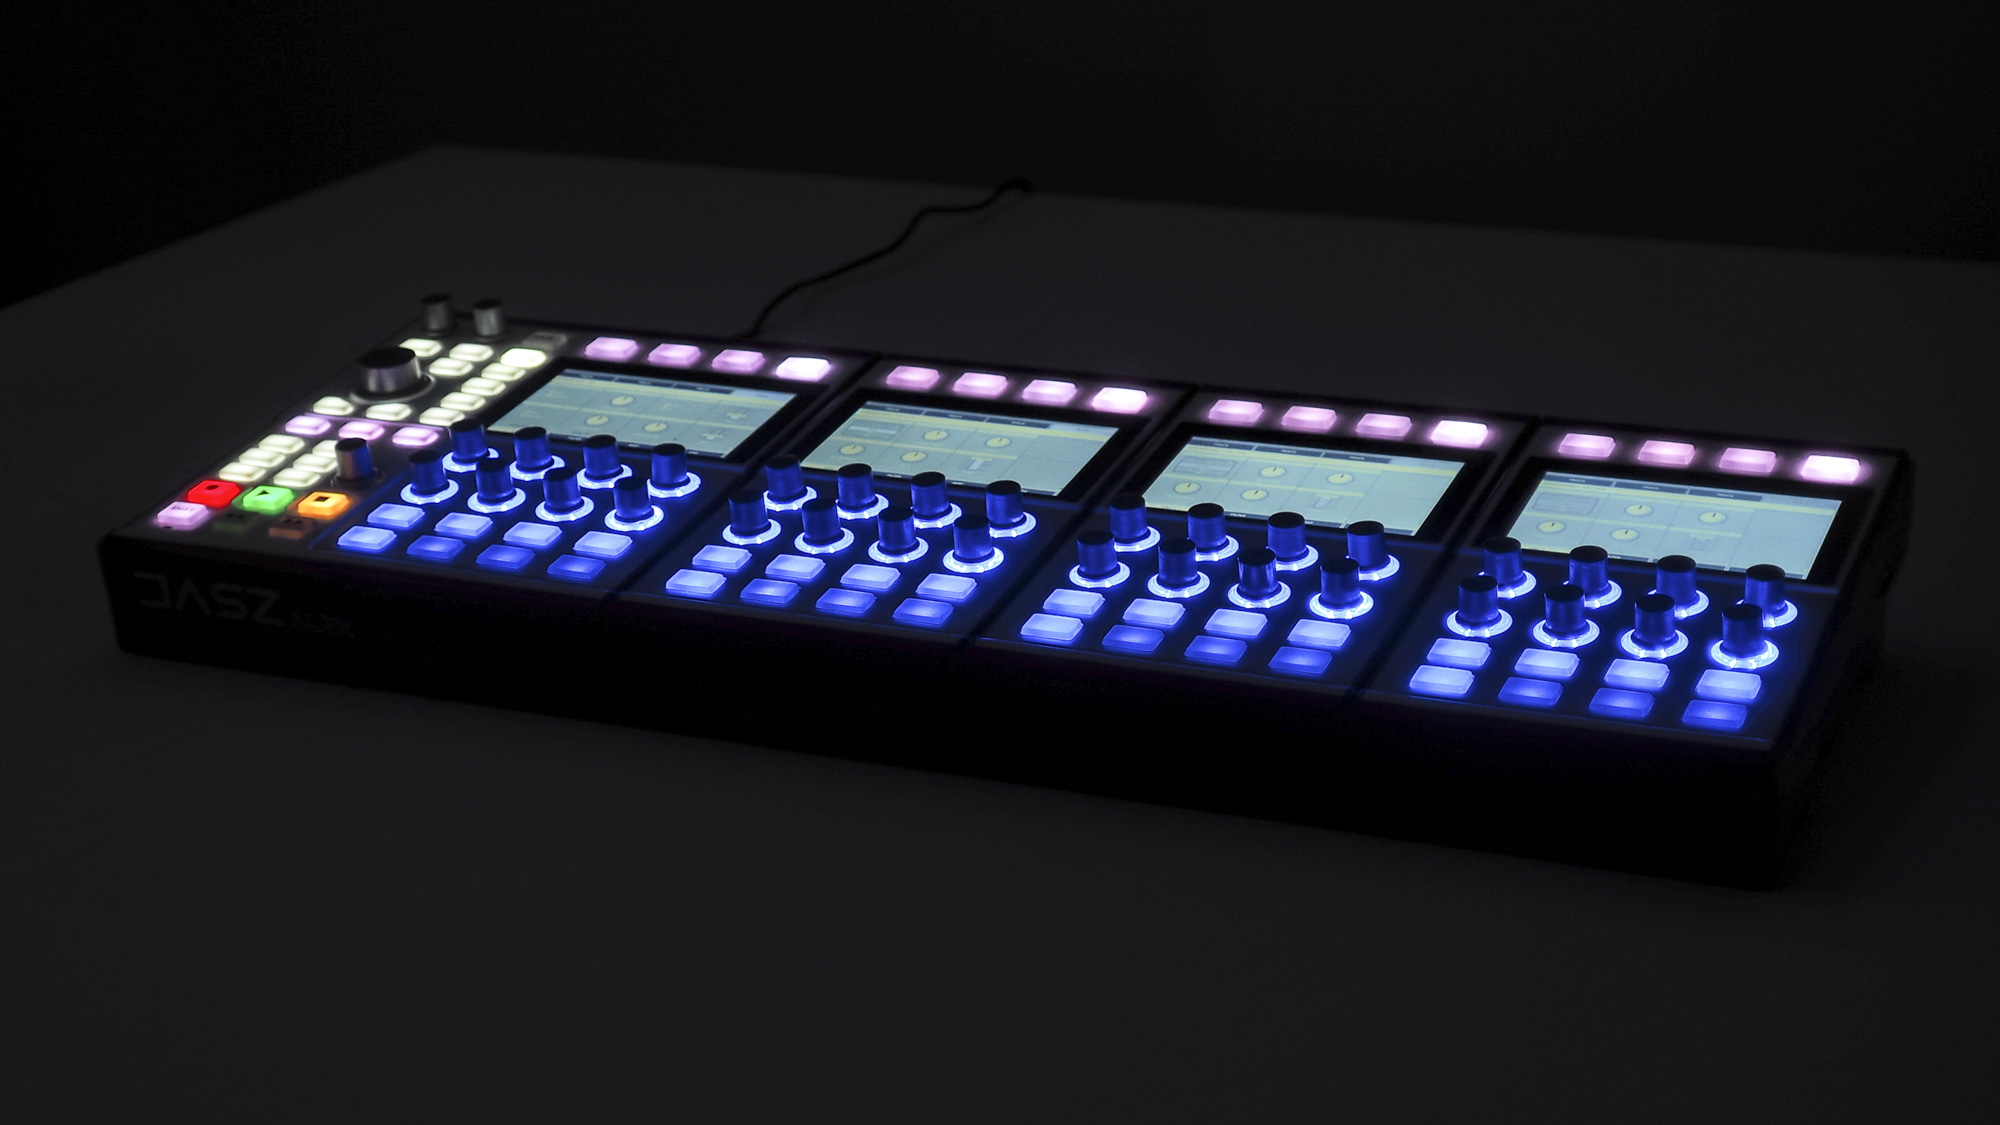 The DASZ ALEX Expandable Synthesizer in a QUAD formation, in a dark room with all its screens and buttons lit.